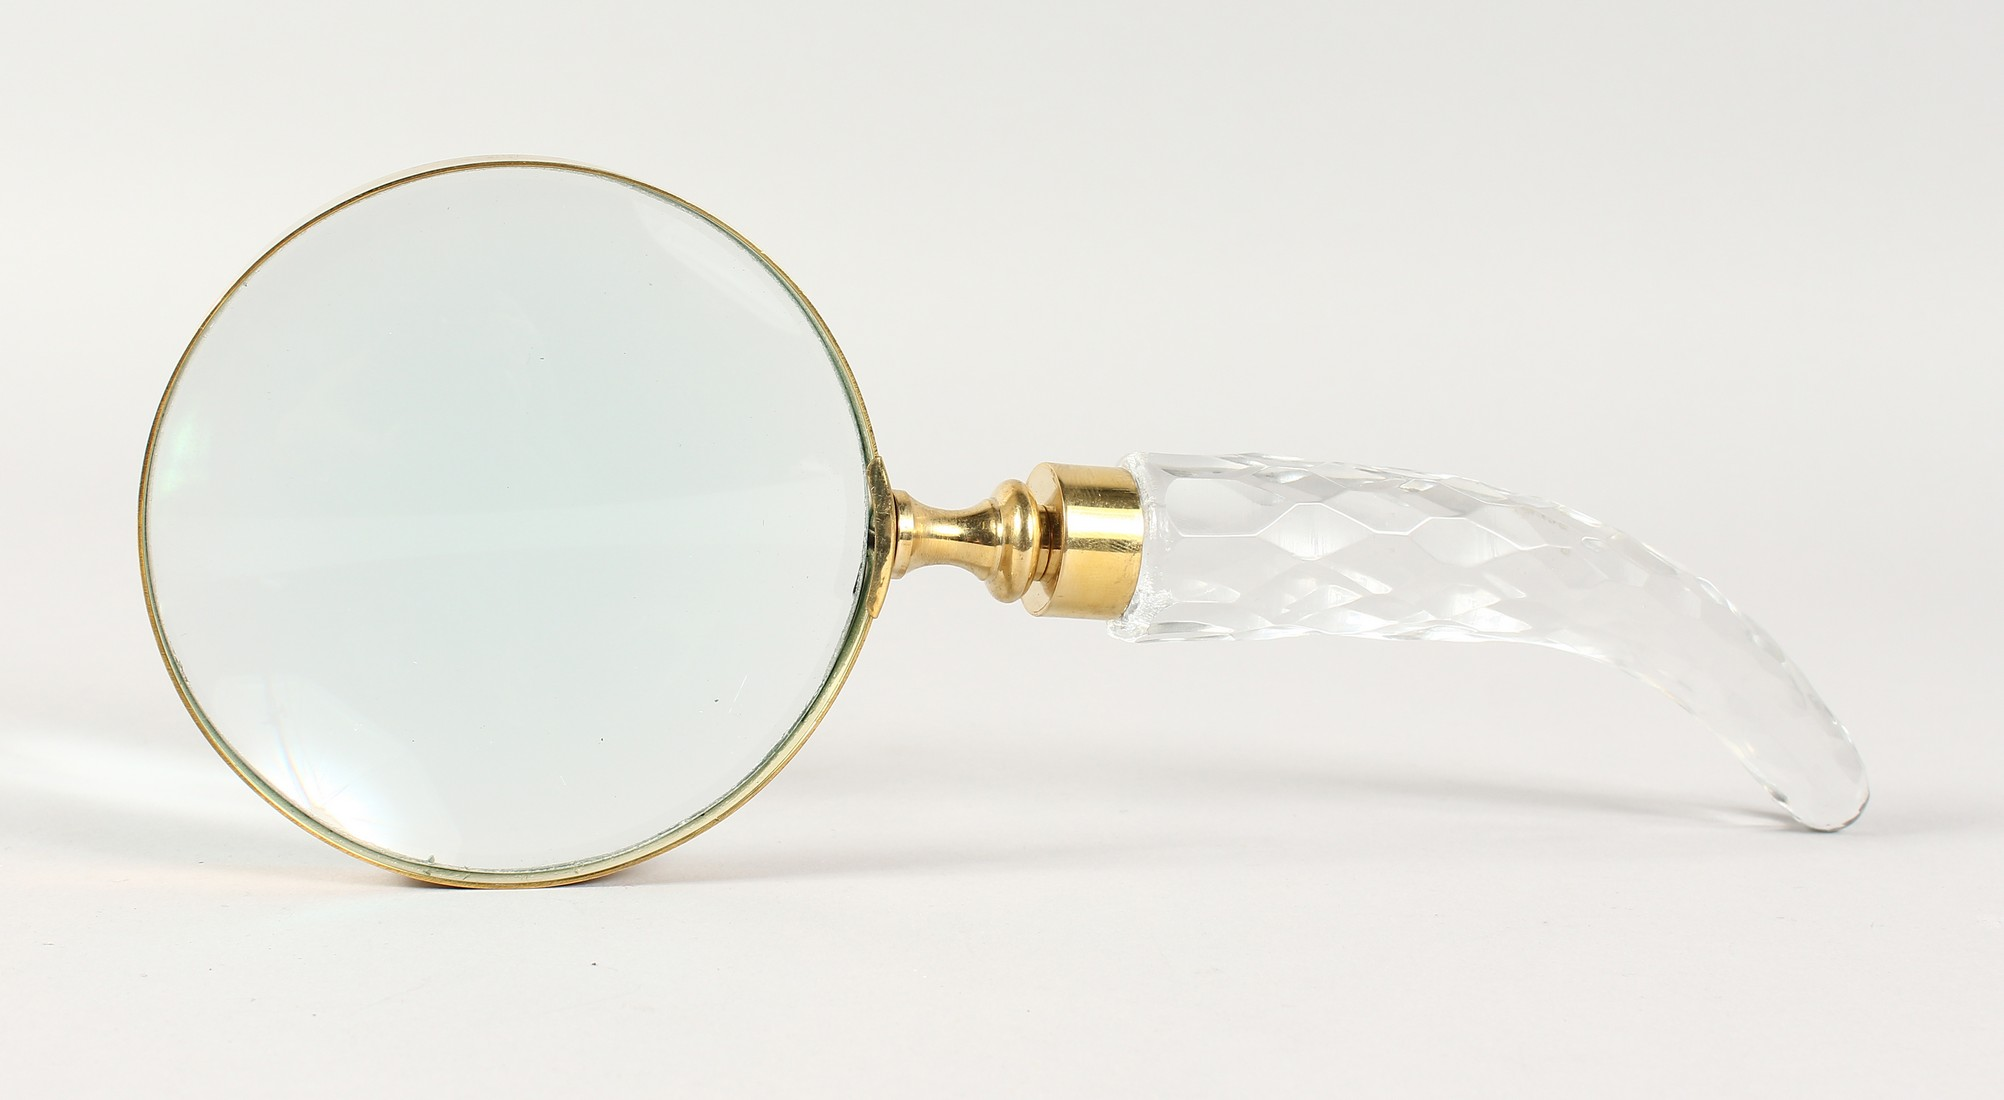 A CUT GLASS HANDLED MAGNIFYING GLASS